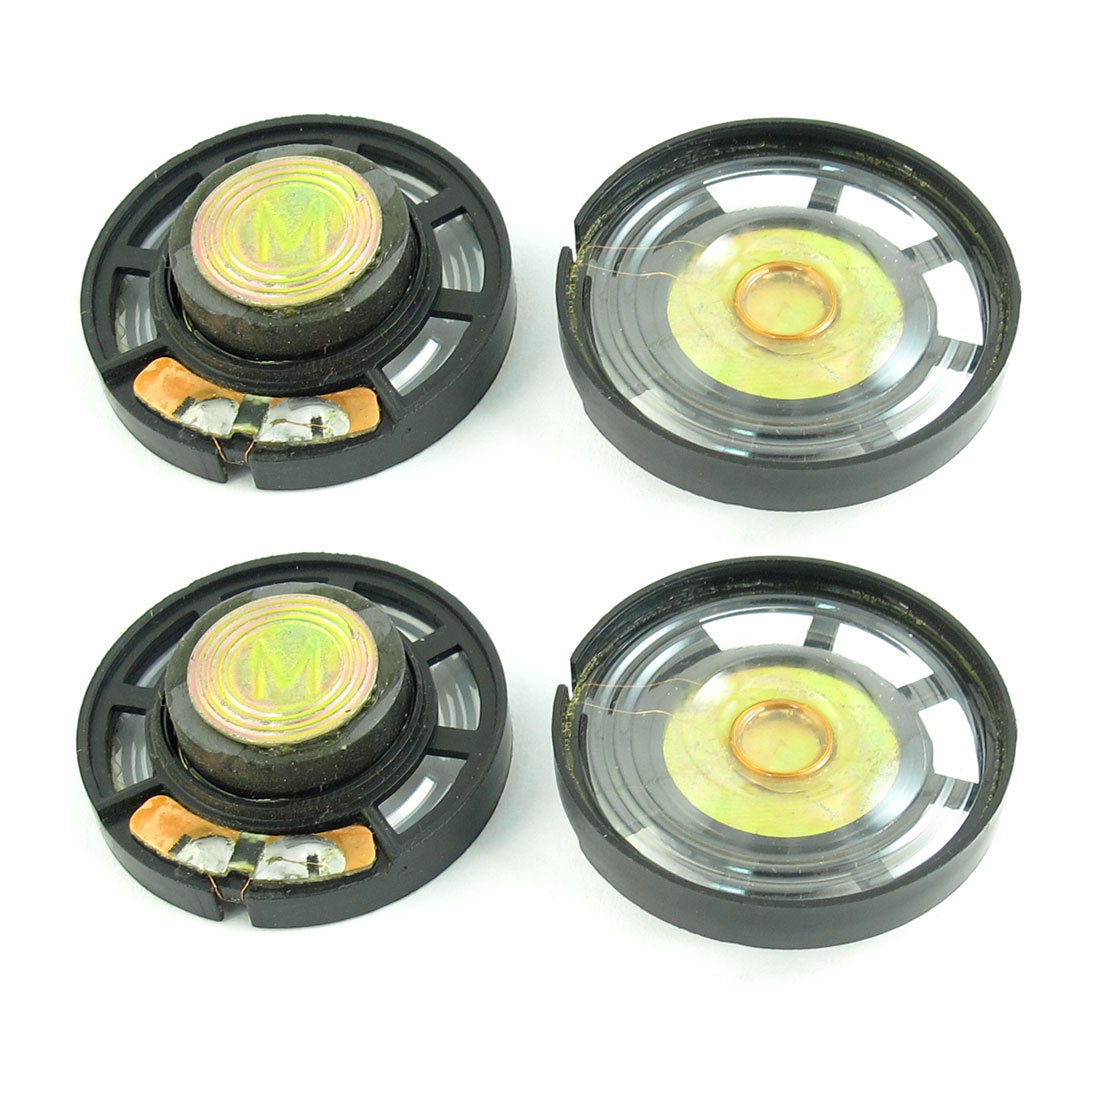 4 Pcs 0.25W 8 Ohm 29mm Diameter Plastic Shell Round Magnet Type Speaker Loudspeaker Horn for Electric Toys